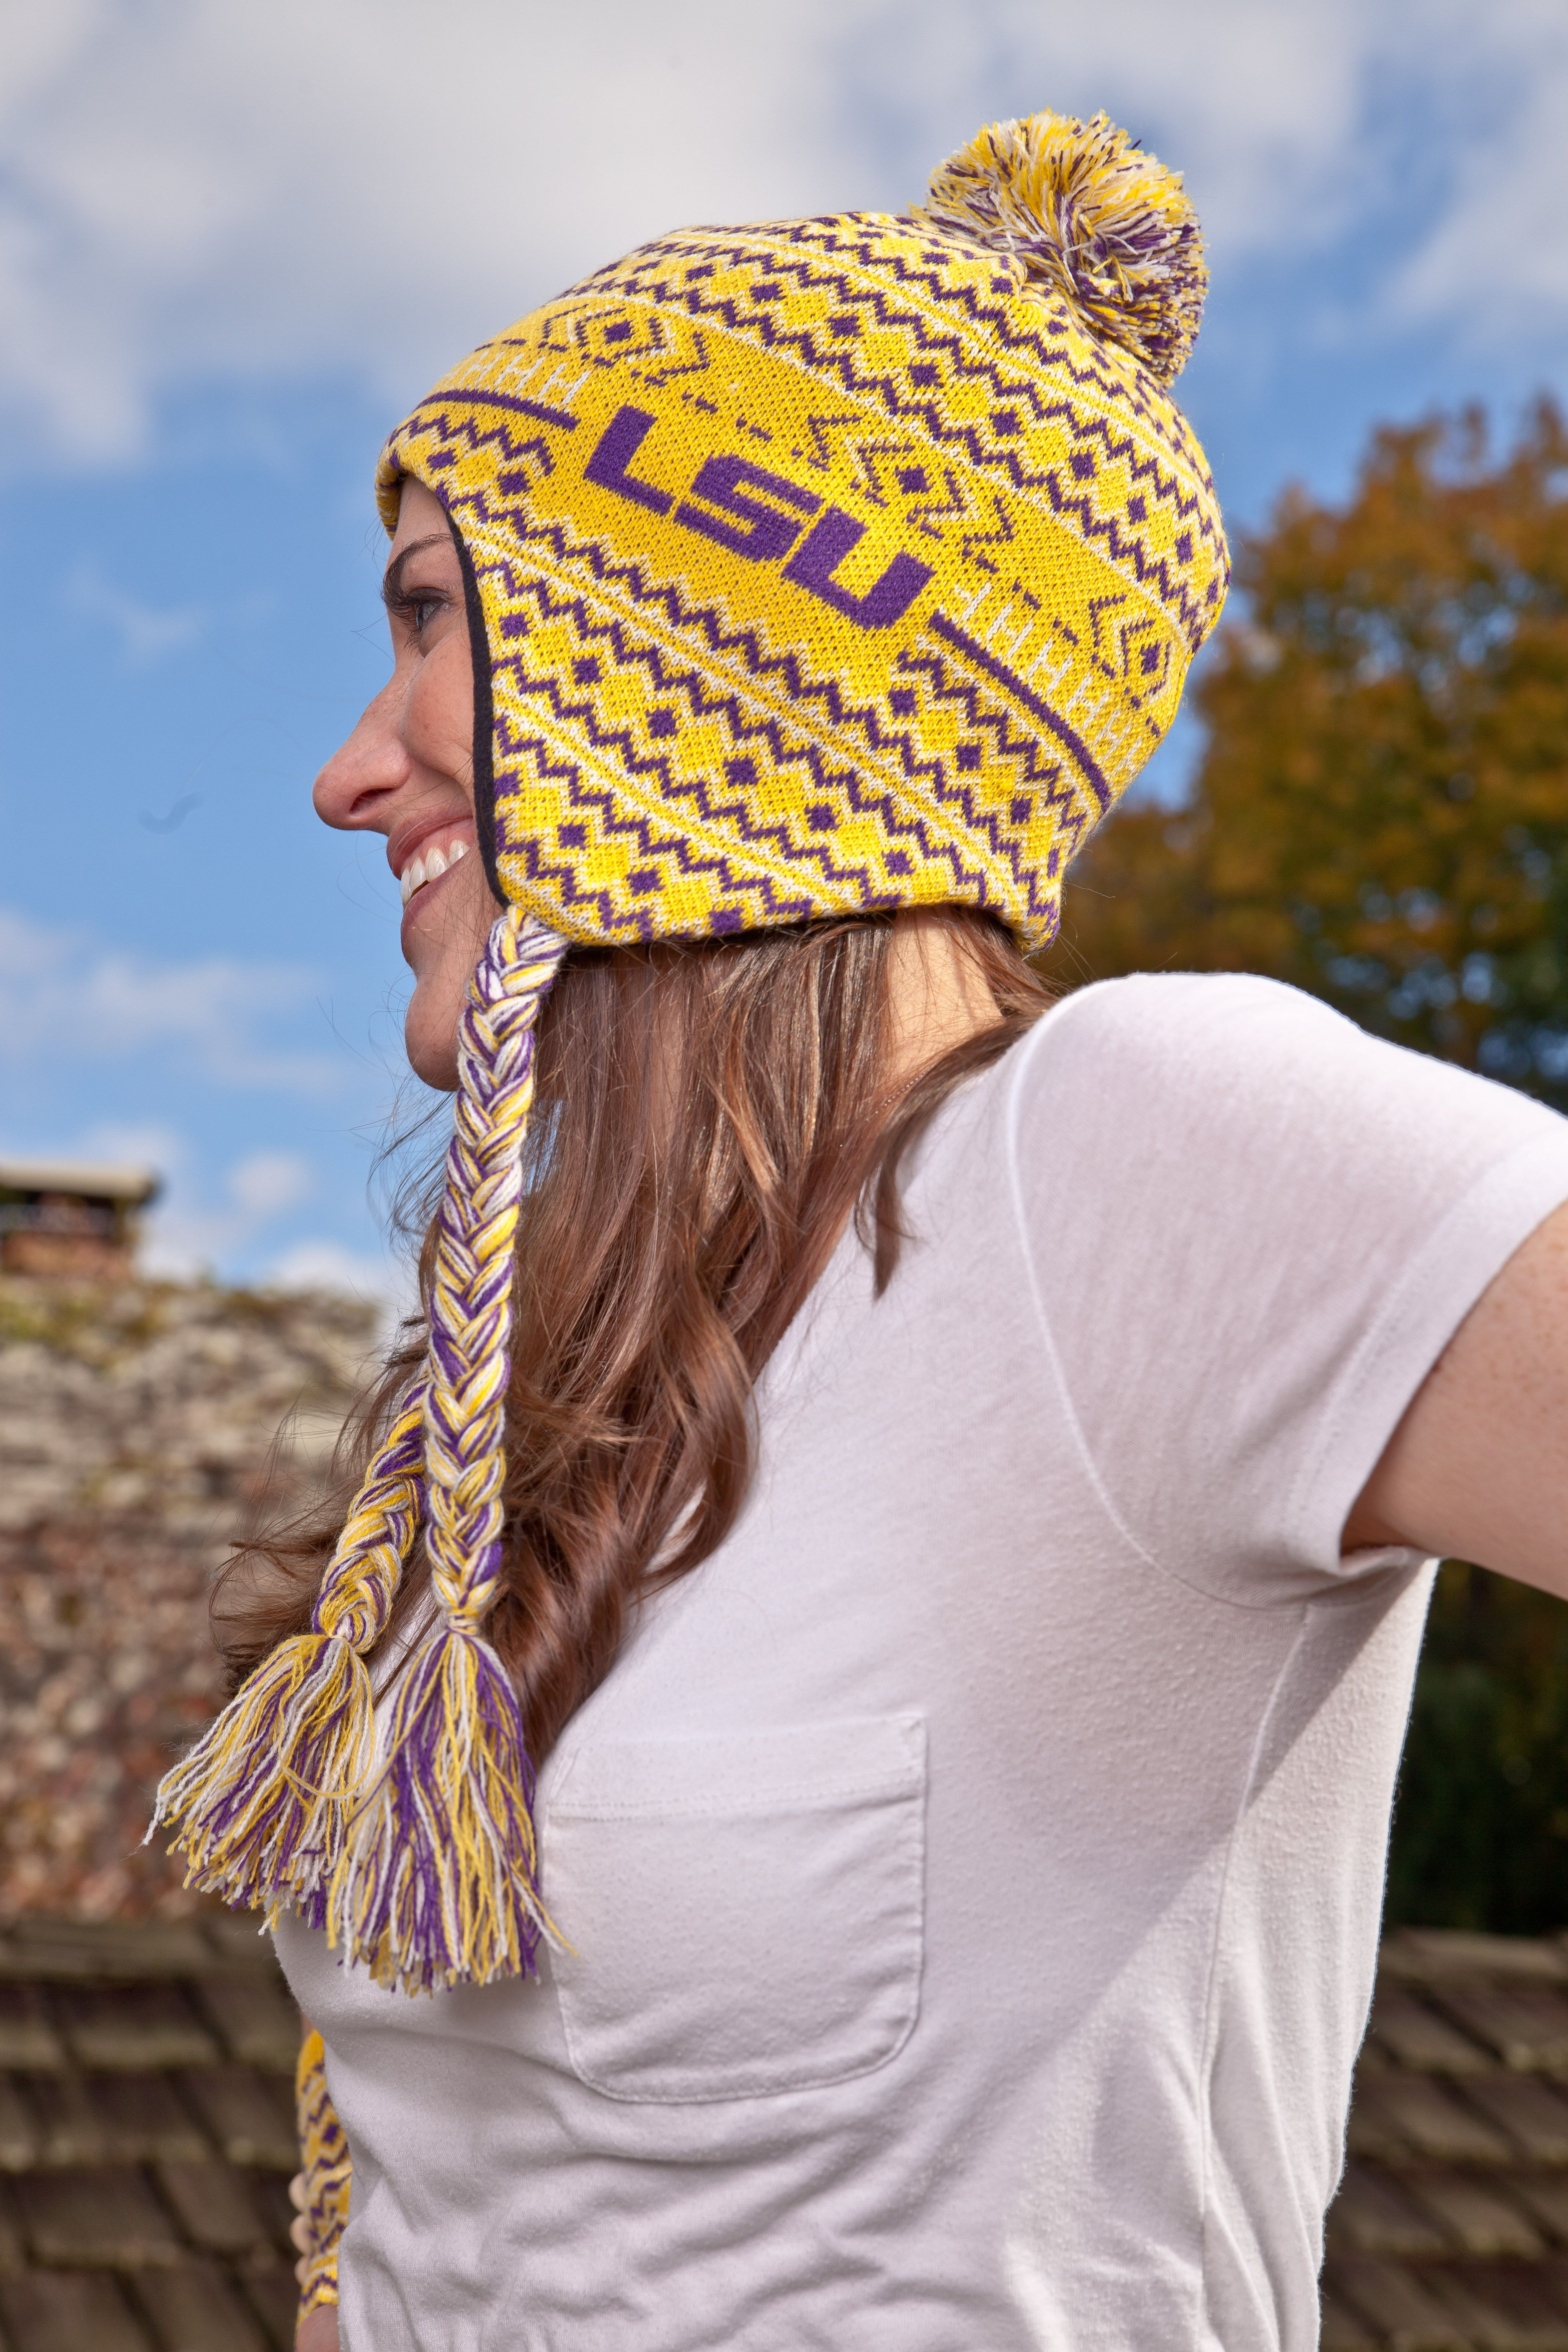 d18eb213d0893 Our LSU knit winter hat is a favorite among Tigers fans. Perfect holiday  gift for him or her.  19.99